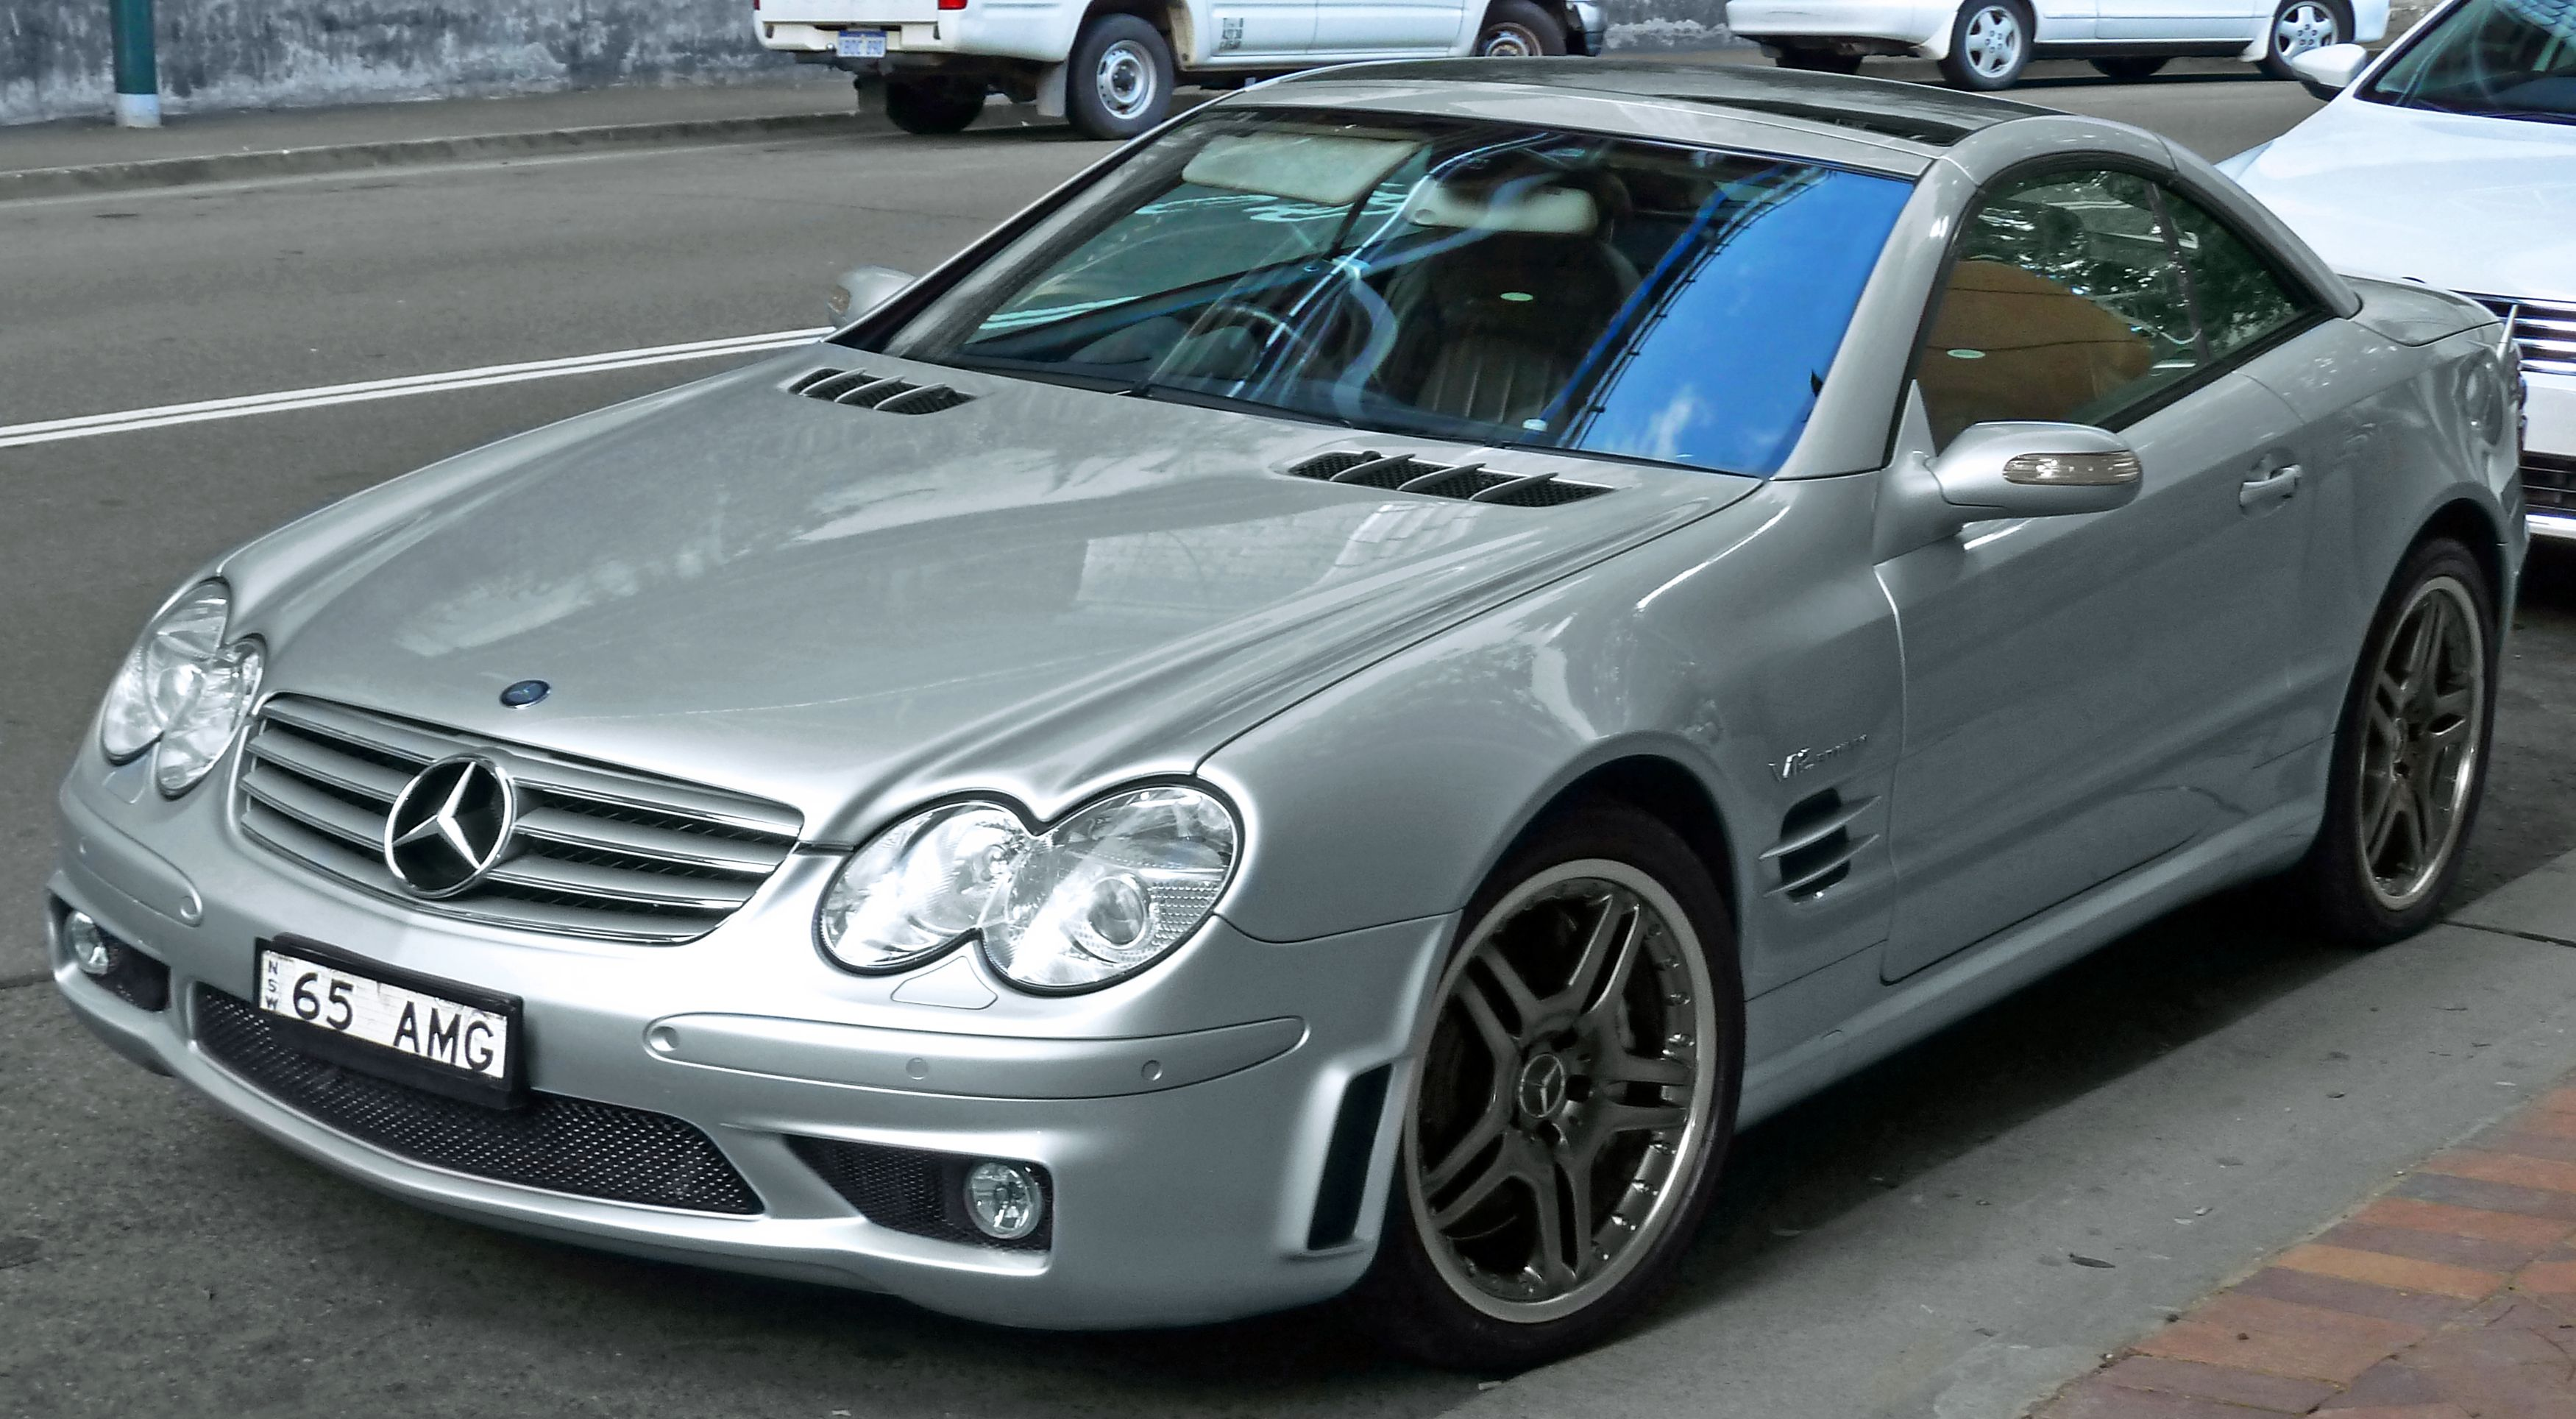 Automotive area 2011 mercedes benz sl r230 - 2004 Mercedes Benz Sl65 Amg Mercedes Benz Sl Class Wikipedia The Free Encyclopedia Mercedes Benz Sl Class Reviews Car Driver Check Out The Mercedes Benz